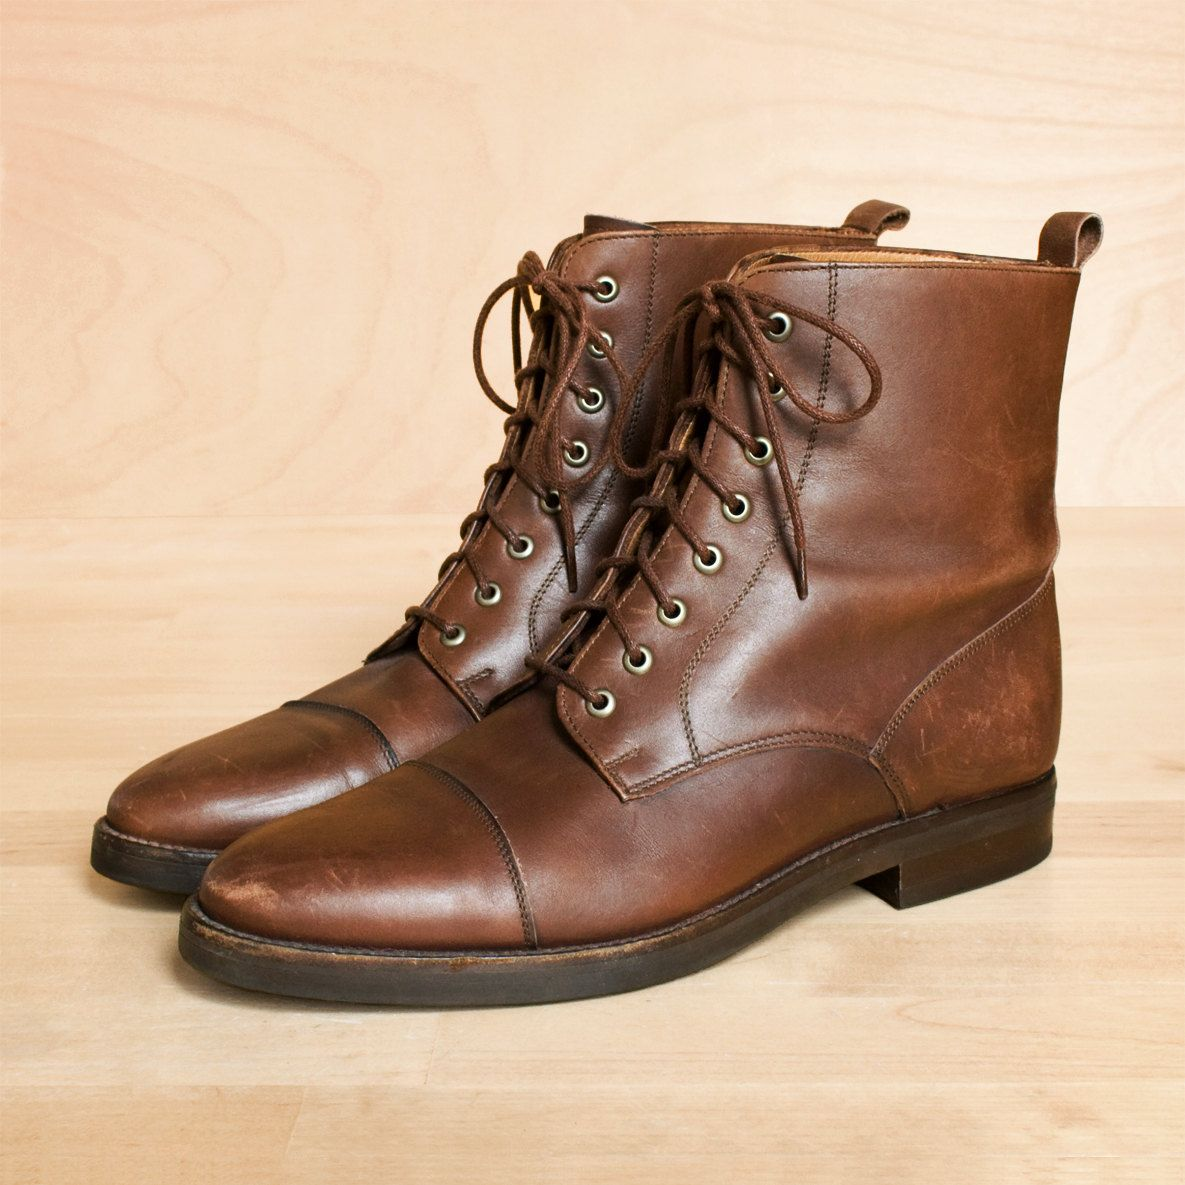 ankle lace up flat boots for women brown - Google Search | My ...